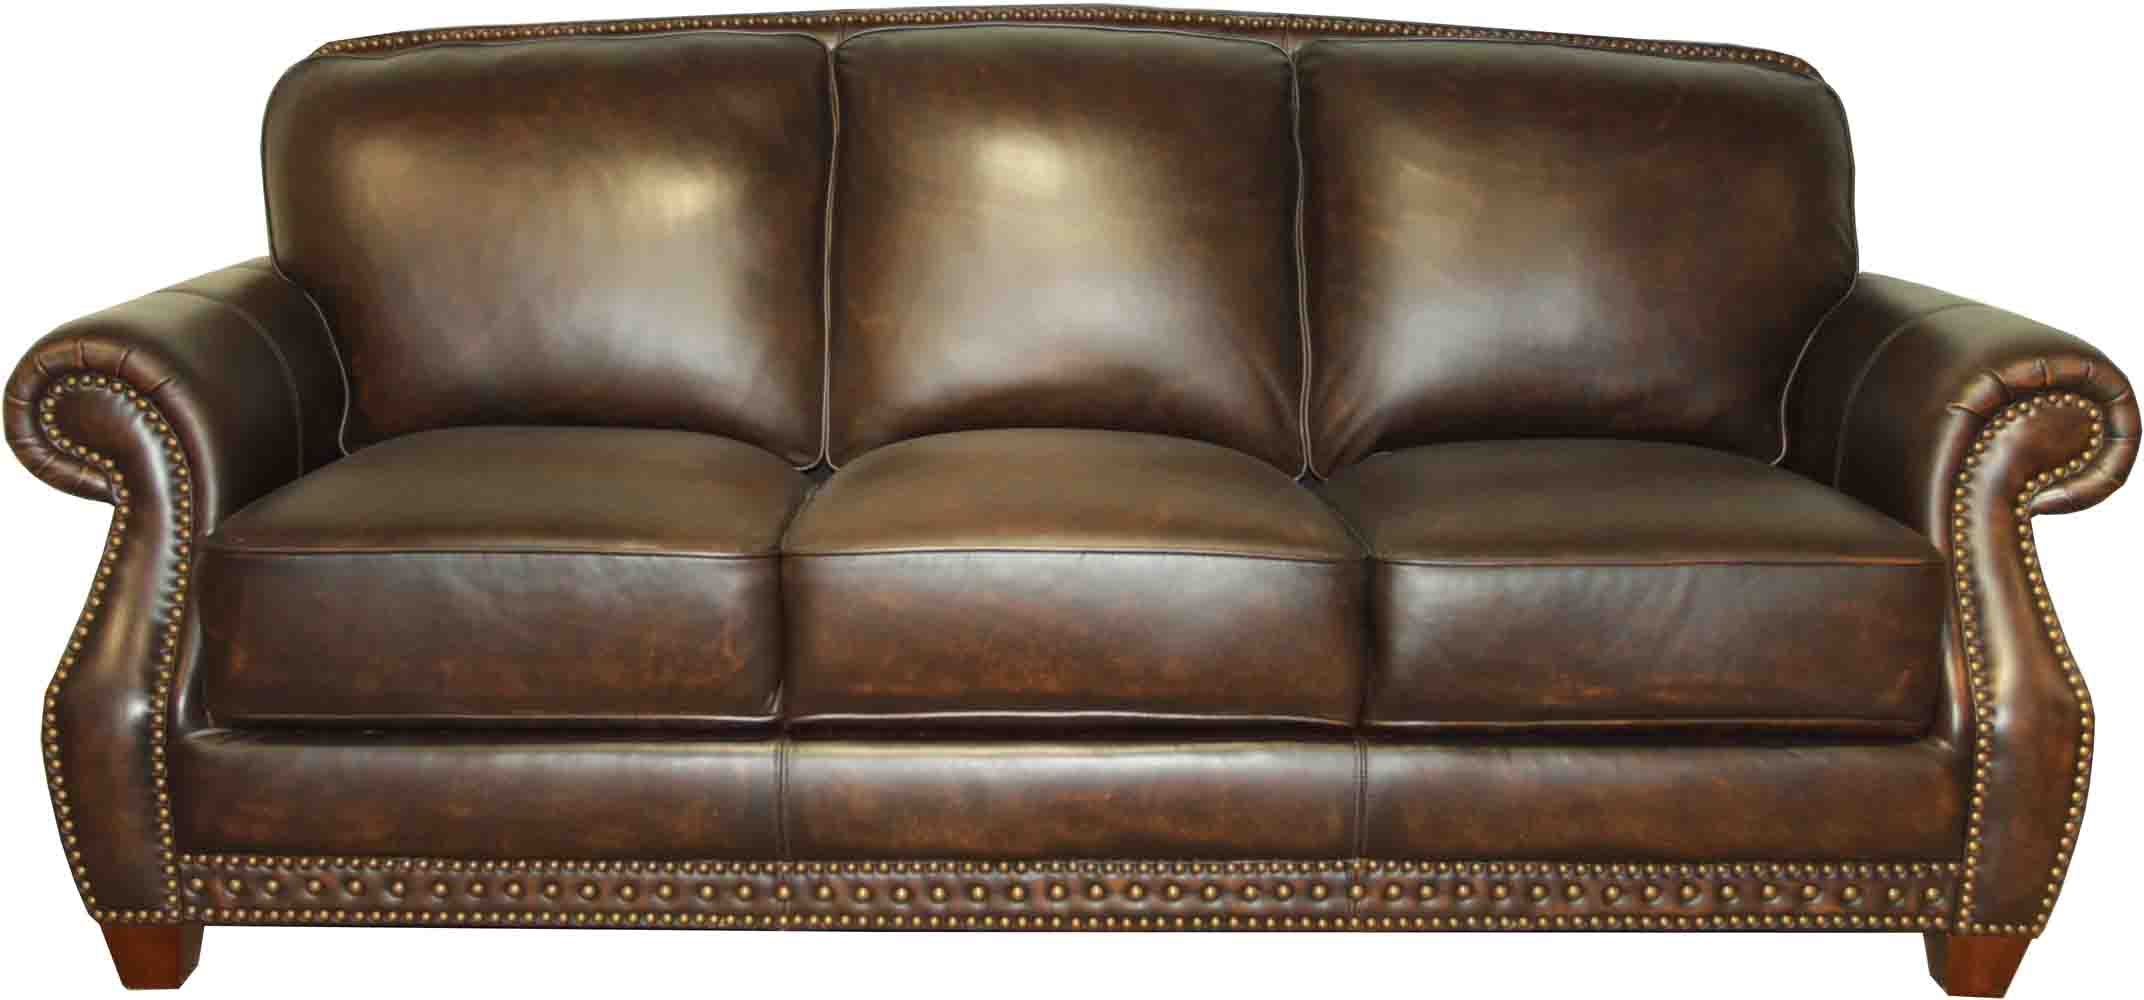 leather furniture ... 1000 images about living room furniture on pinterest broyhill ... OHTXGPY